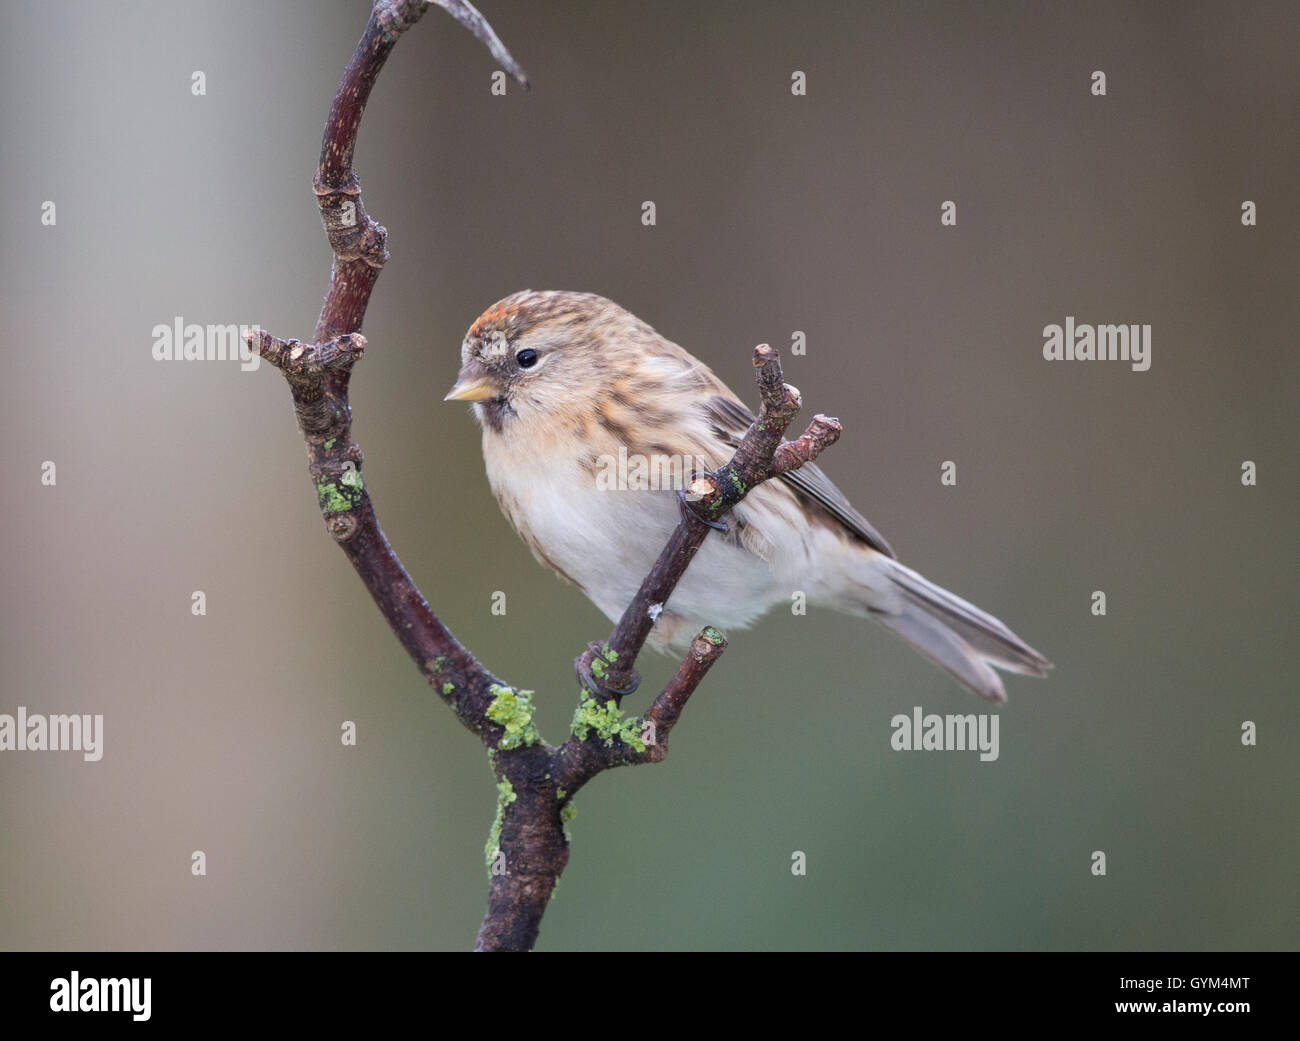 Redpoll (carduelis flammea) perching on a branch in winter - Stock Image